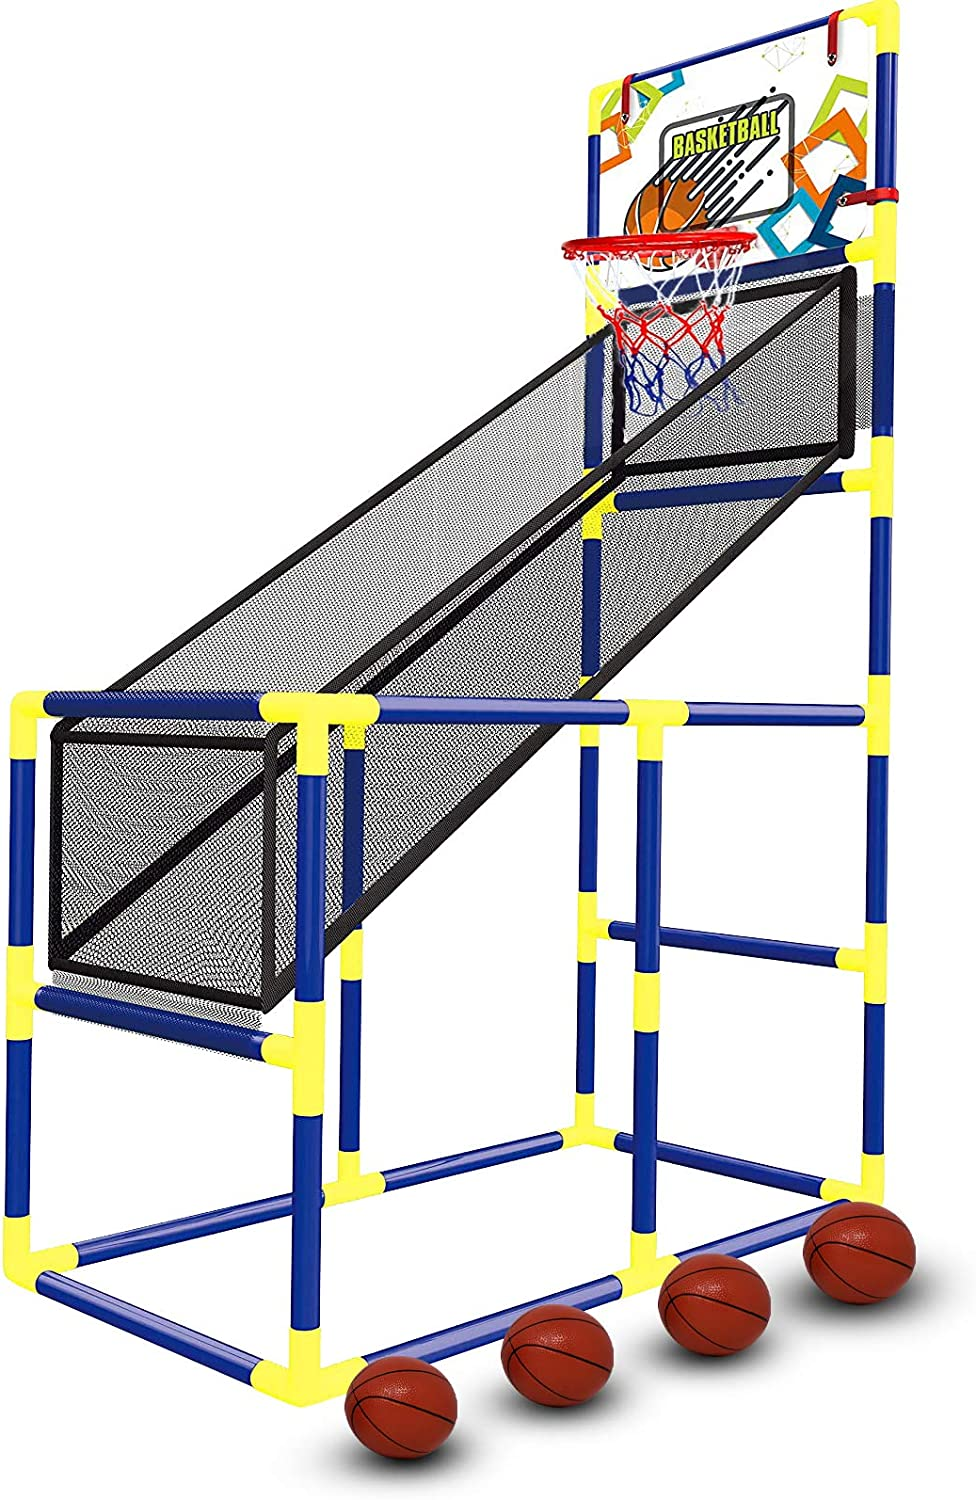 Tundras Sports Basketball Hoop - Indoor, Kids Basketball Hoop Arcade Game - Arcade Game for Kids, with 4 Balls - Basketball Shooting System, for Boys and Girls Ages 1-14